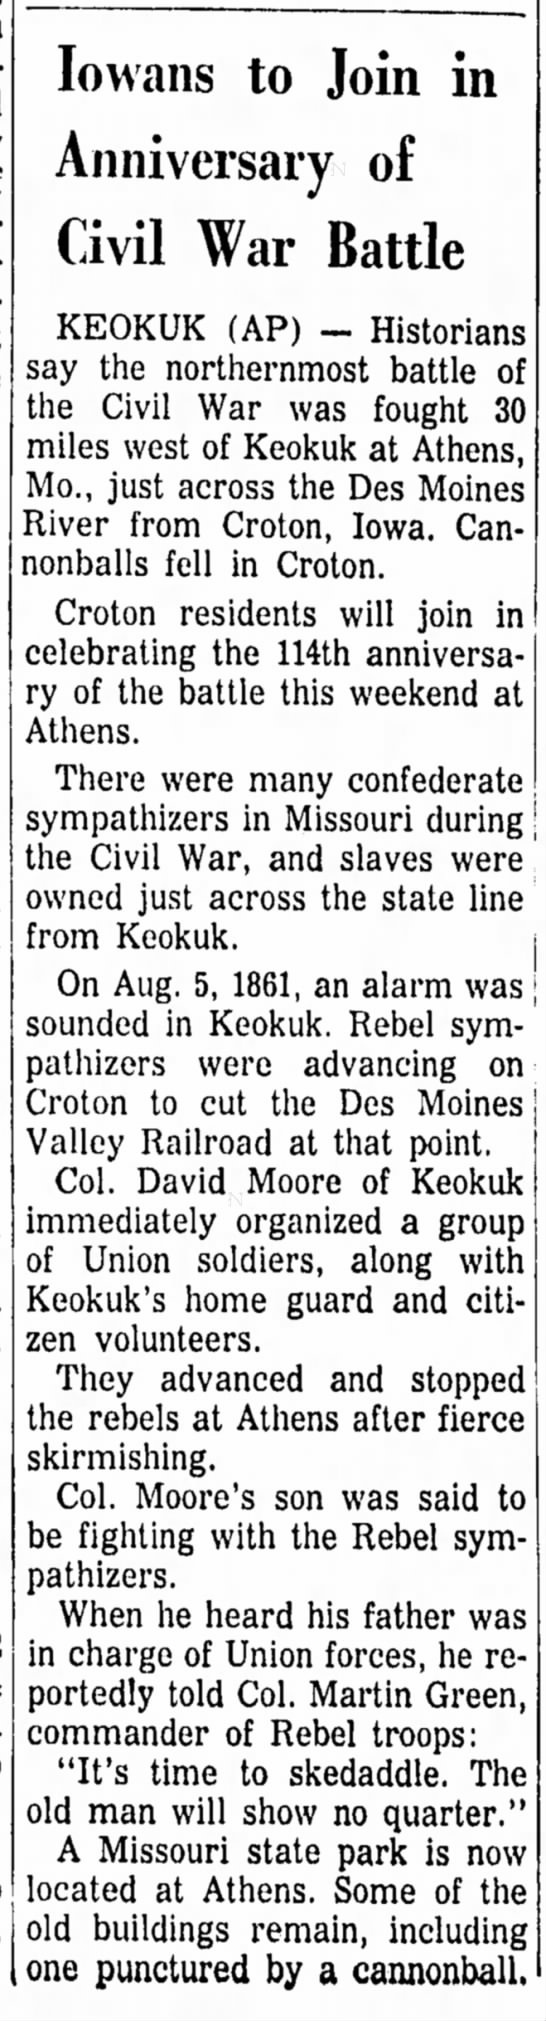 Keokuk battle - Iovvans to Join in Anniversary of Civil War...